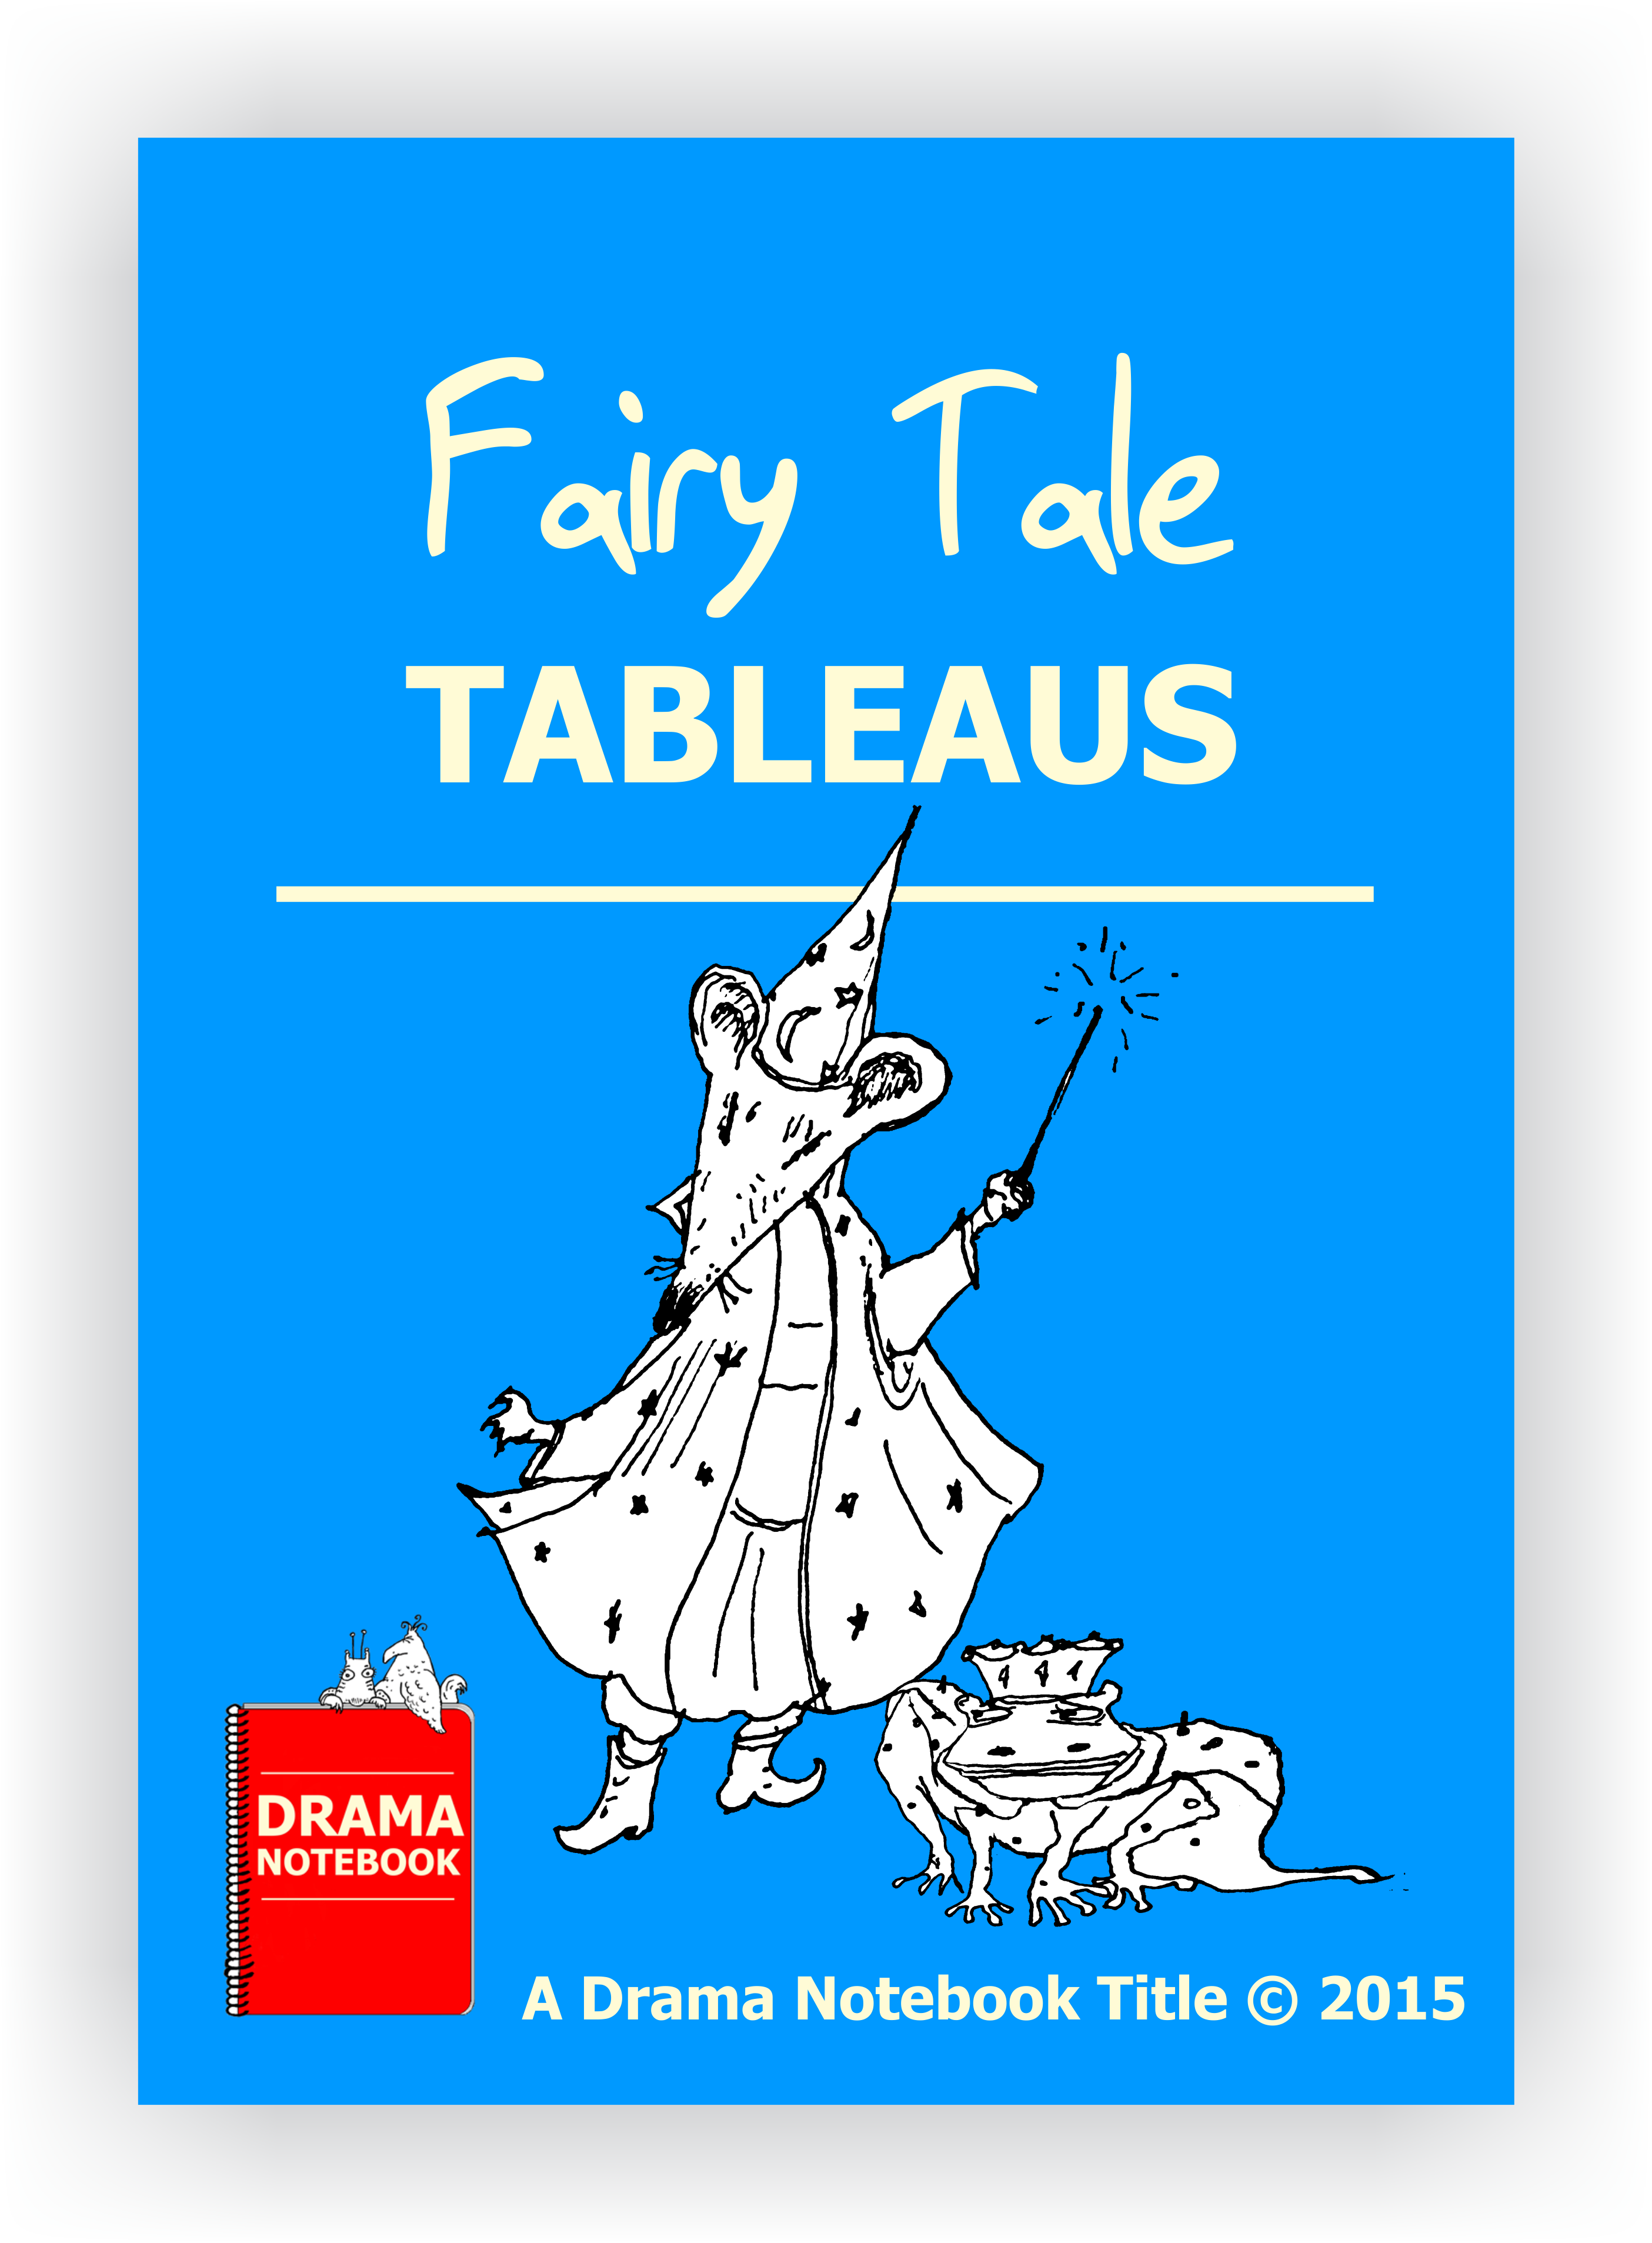 fairy tale tableau activity for drama class. Black Bedroom Furniture Sets. Home Design Ideas